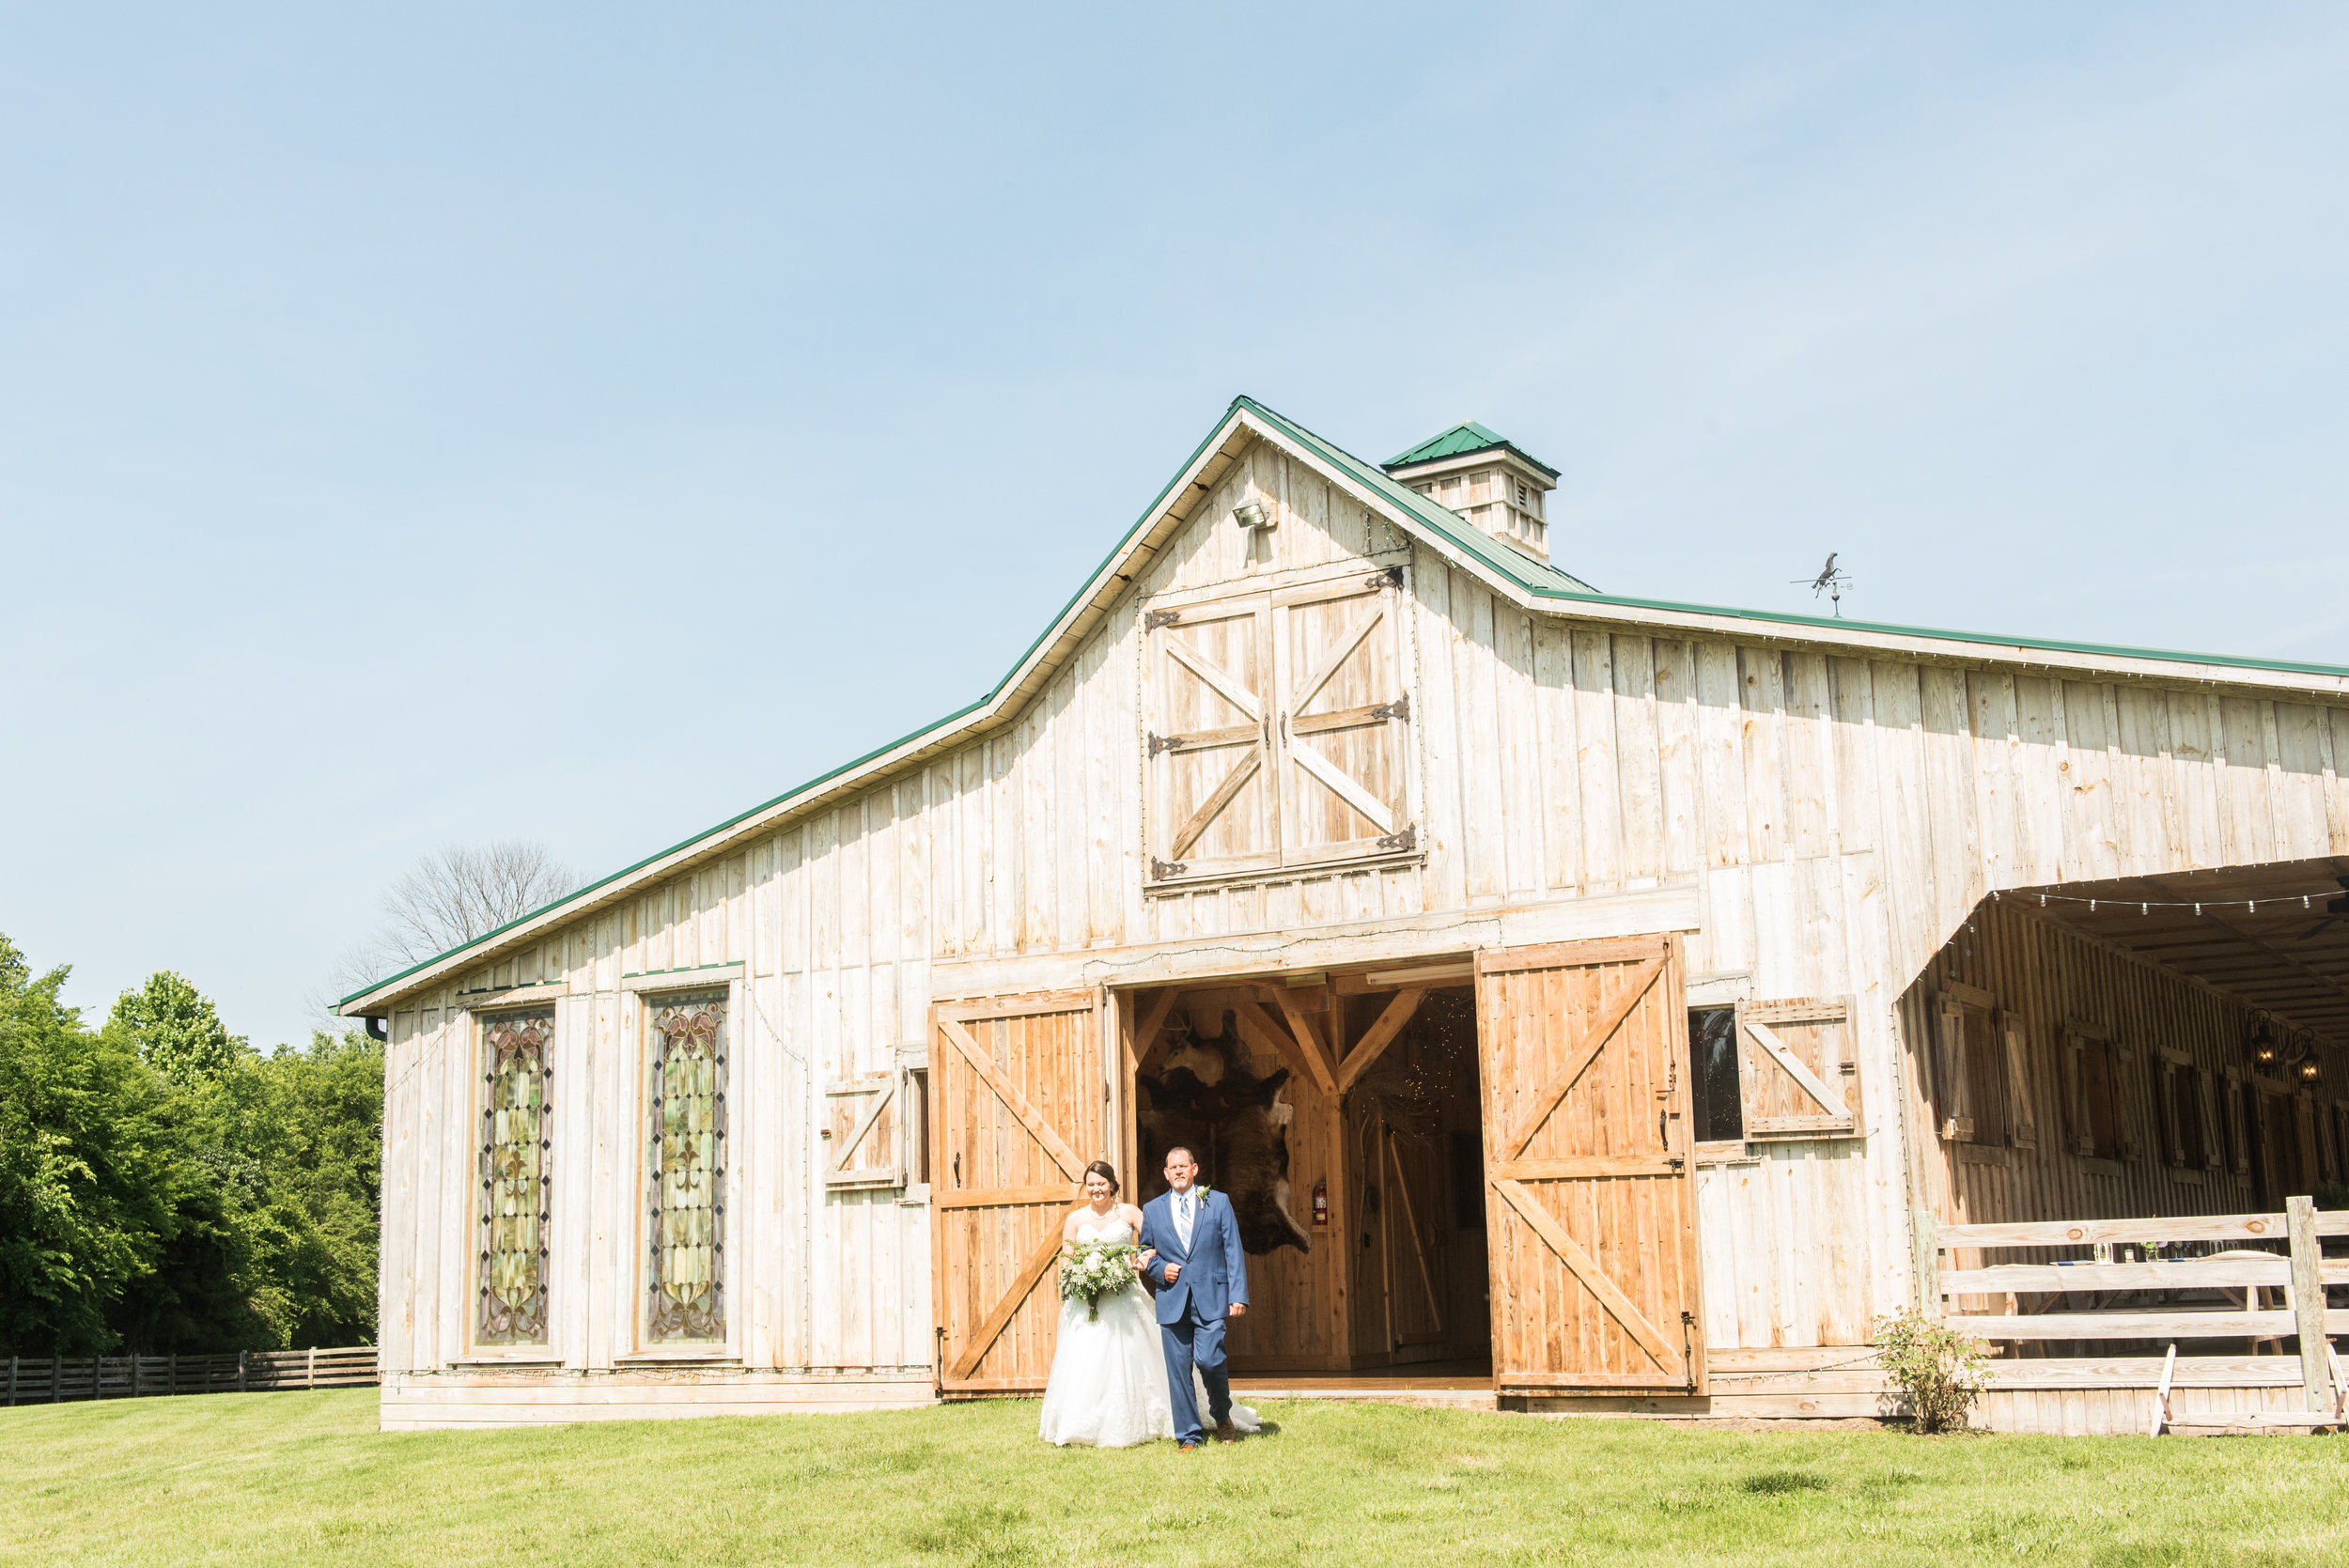 Madalyn Yates Photography Virginia Wedding Photographer Barn Summer Weddings First Look